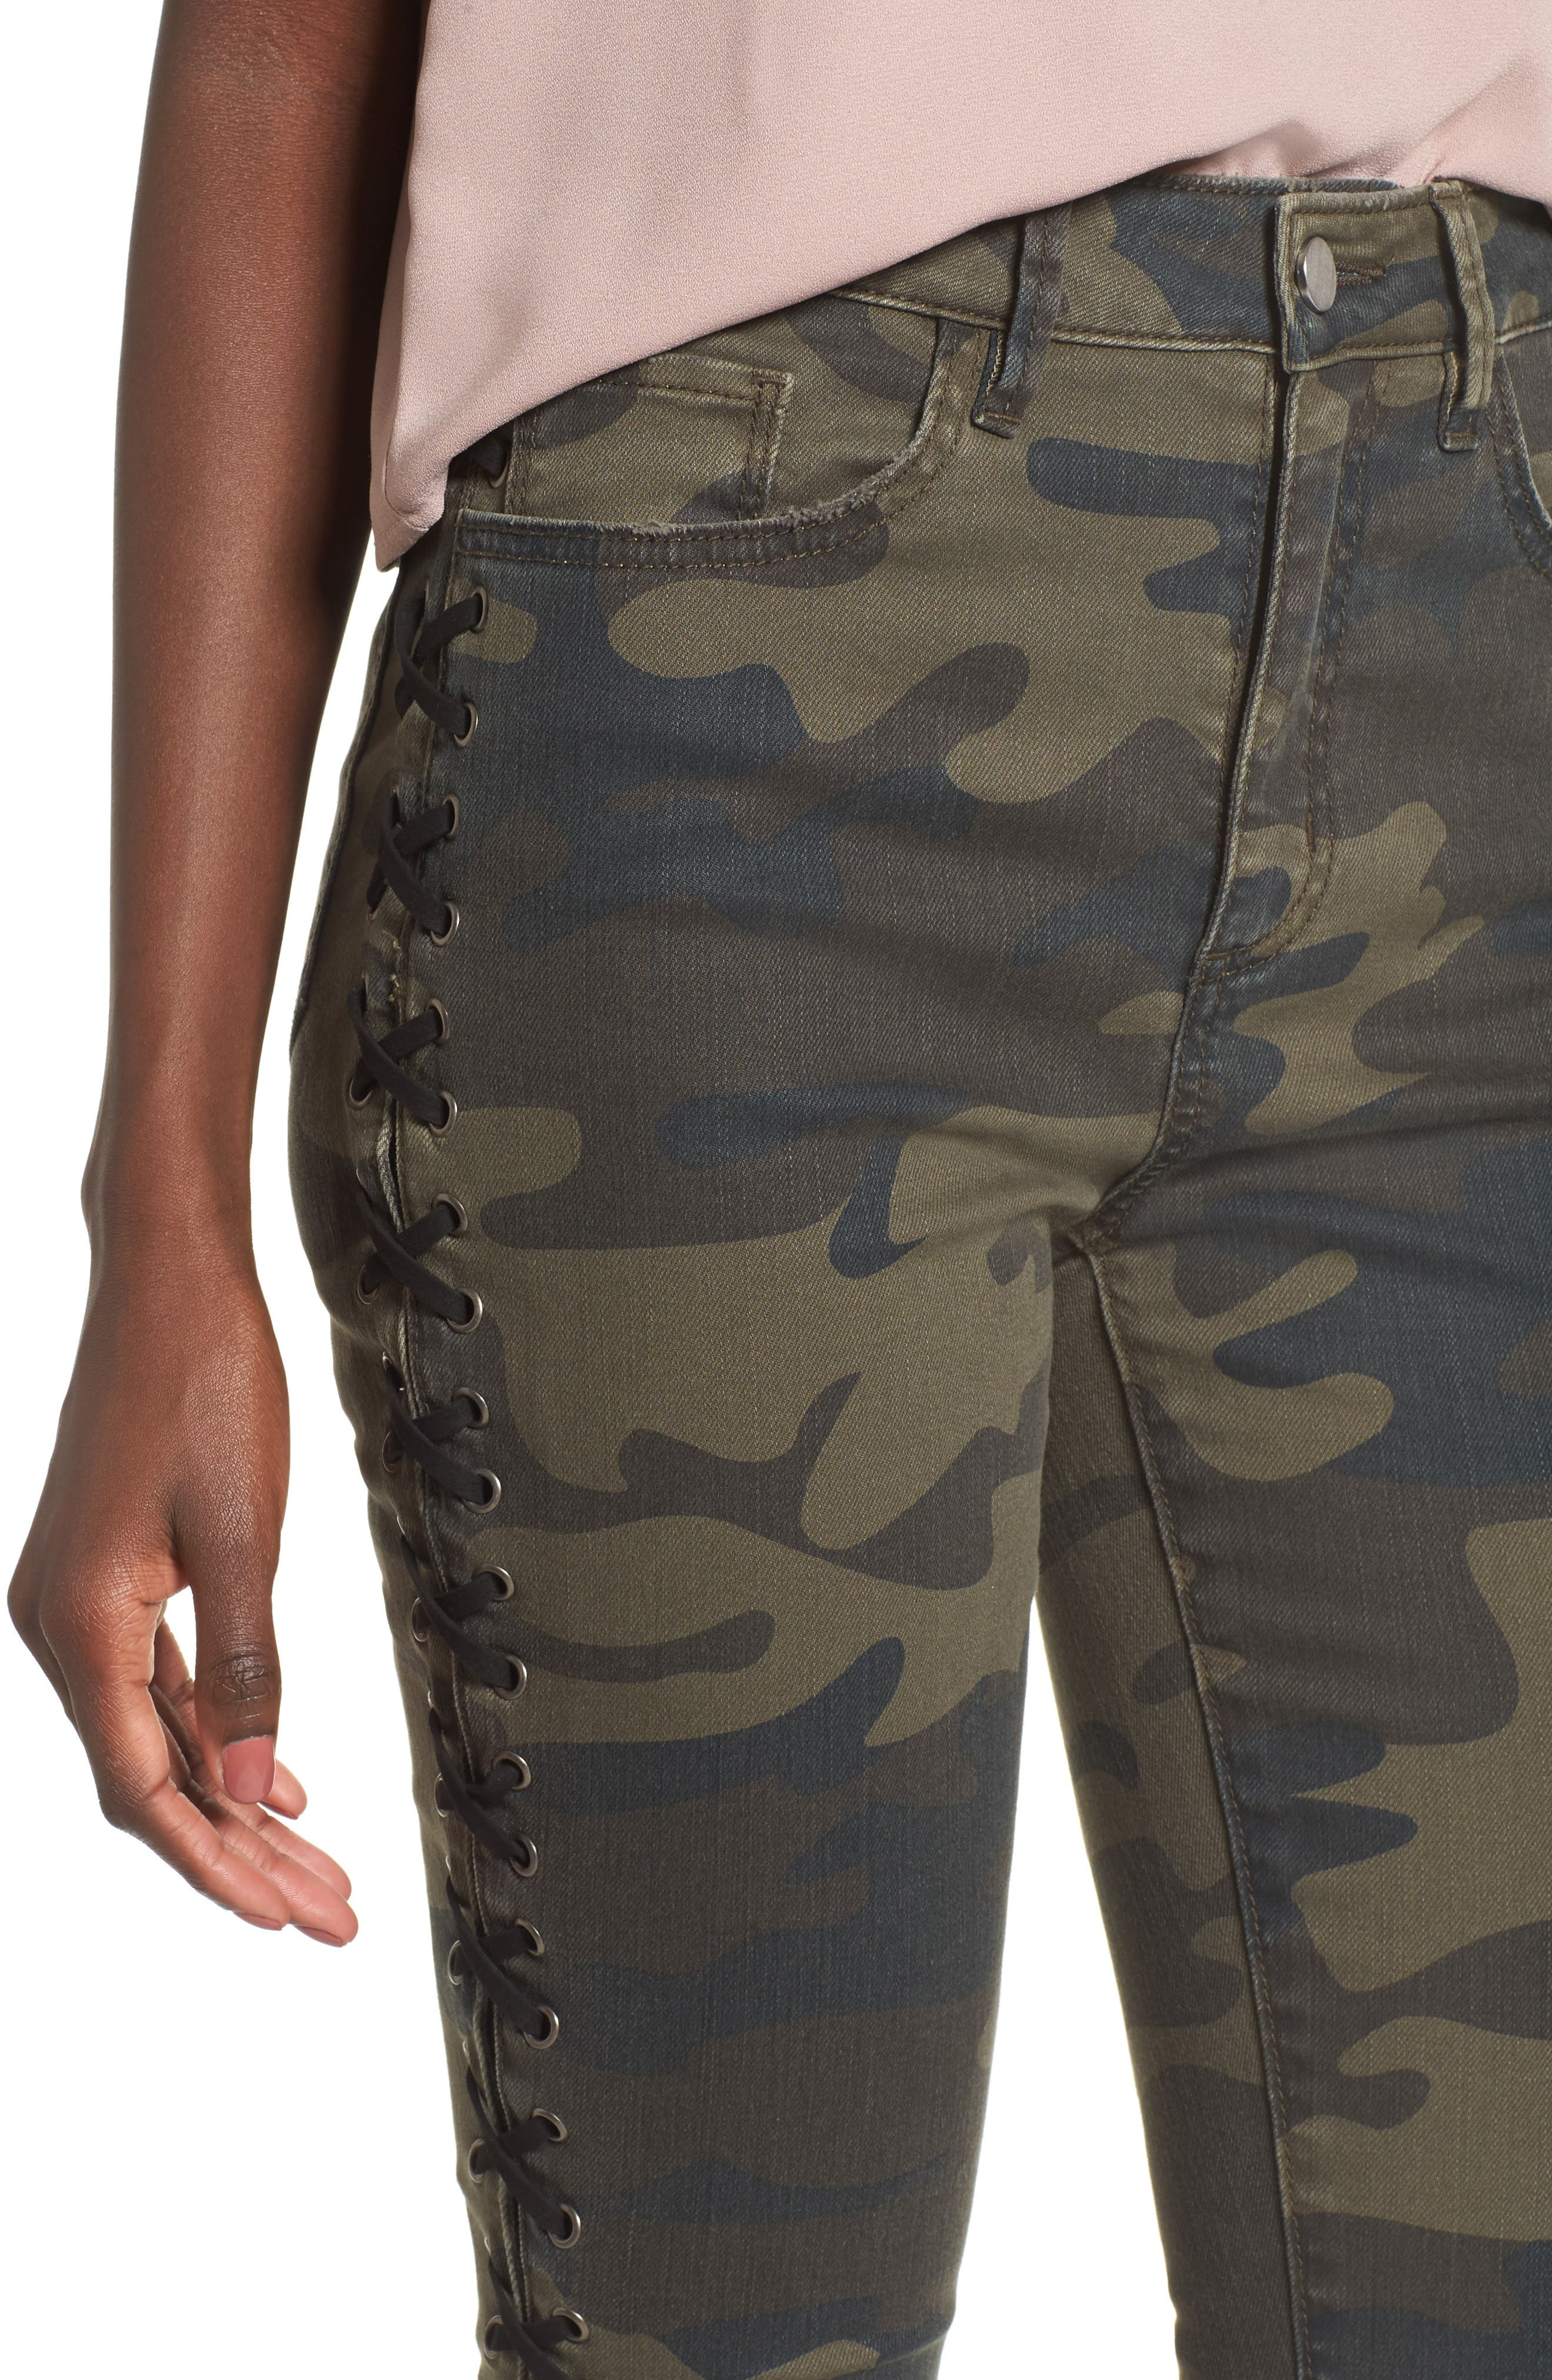 Lace Up Camo Crop Skinny Jeans,                             Alternate thumbnail 4, color,                             Camo Grunge Overdye